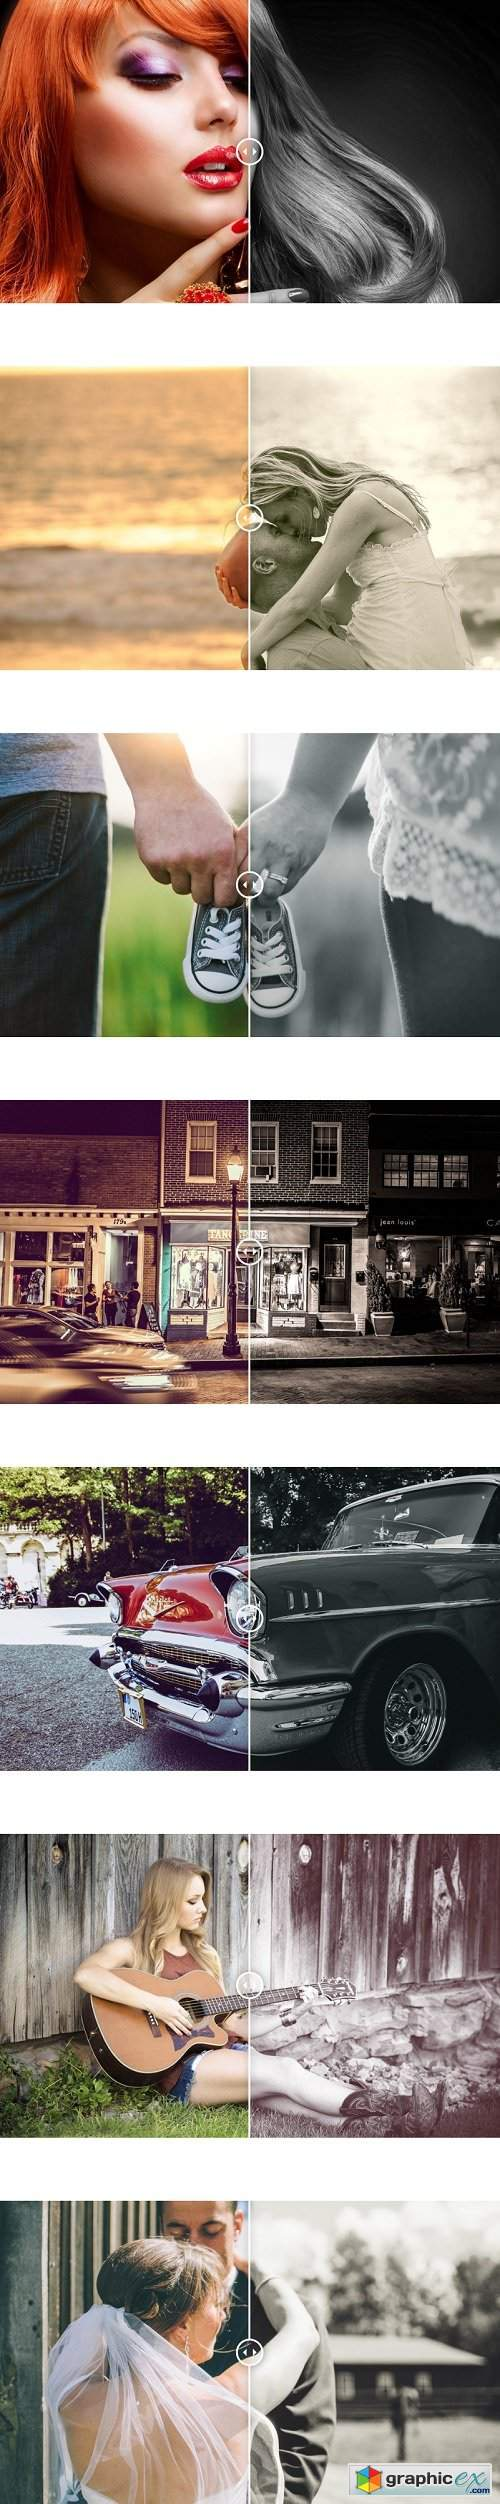 Photonify - Monochrome Collection Lightroom Presets